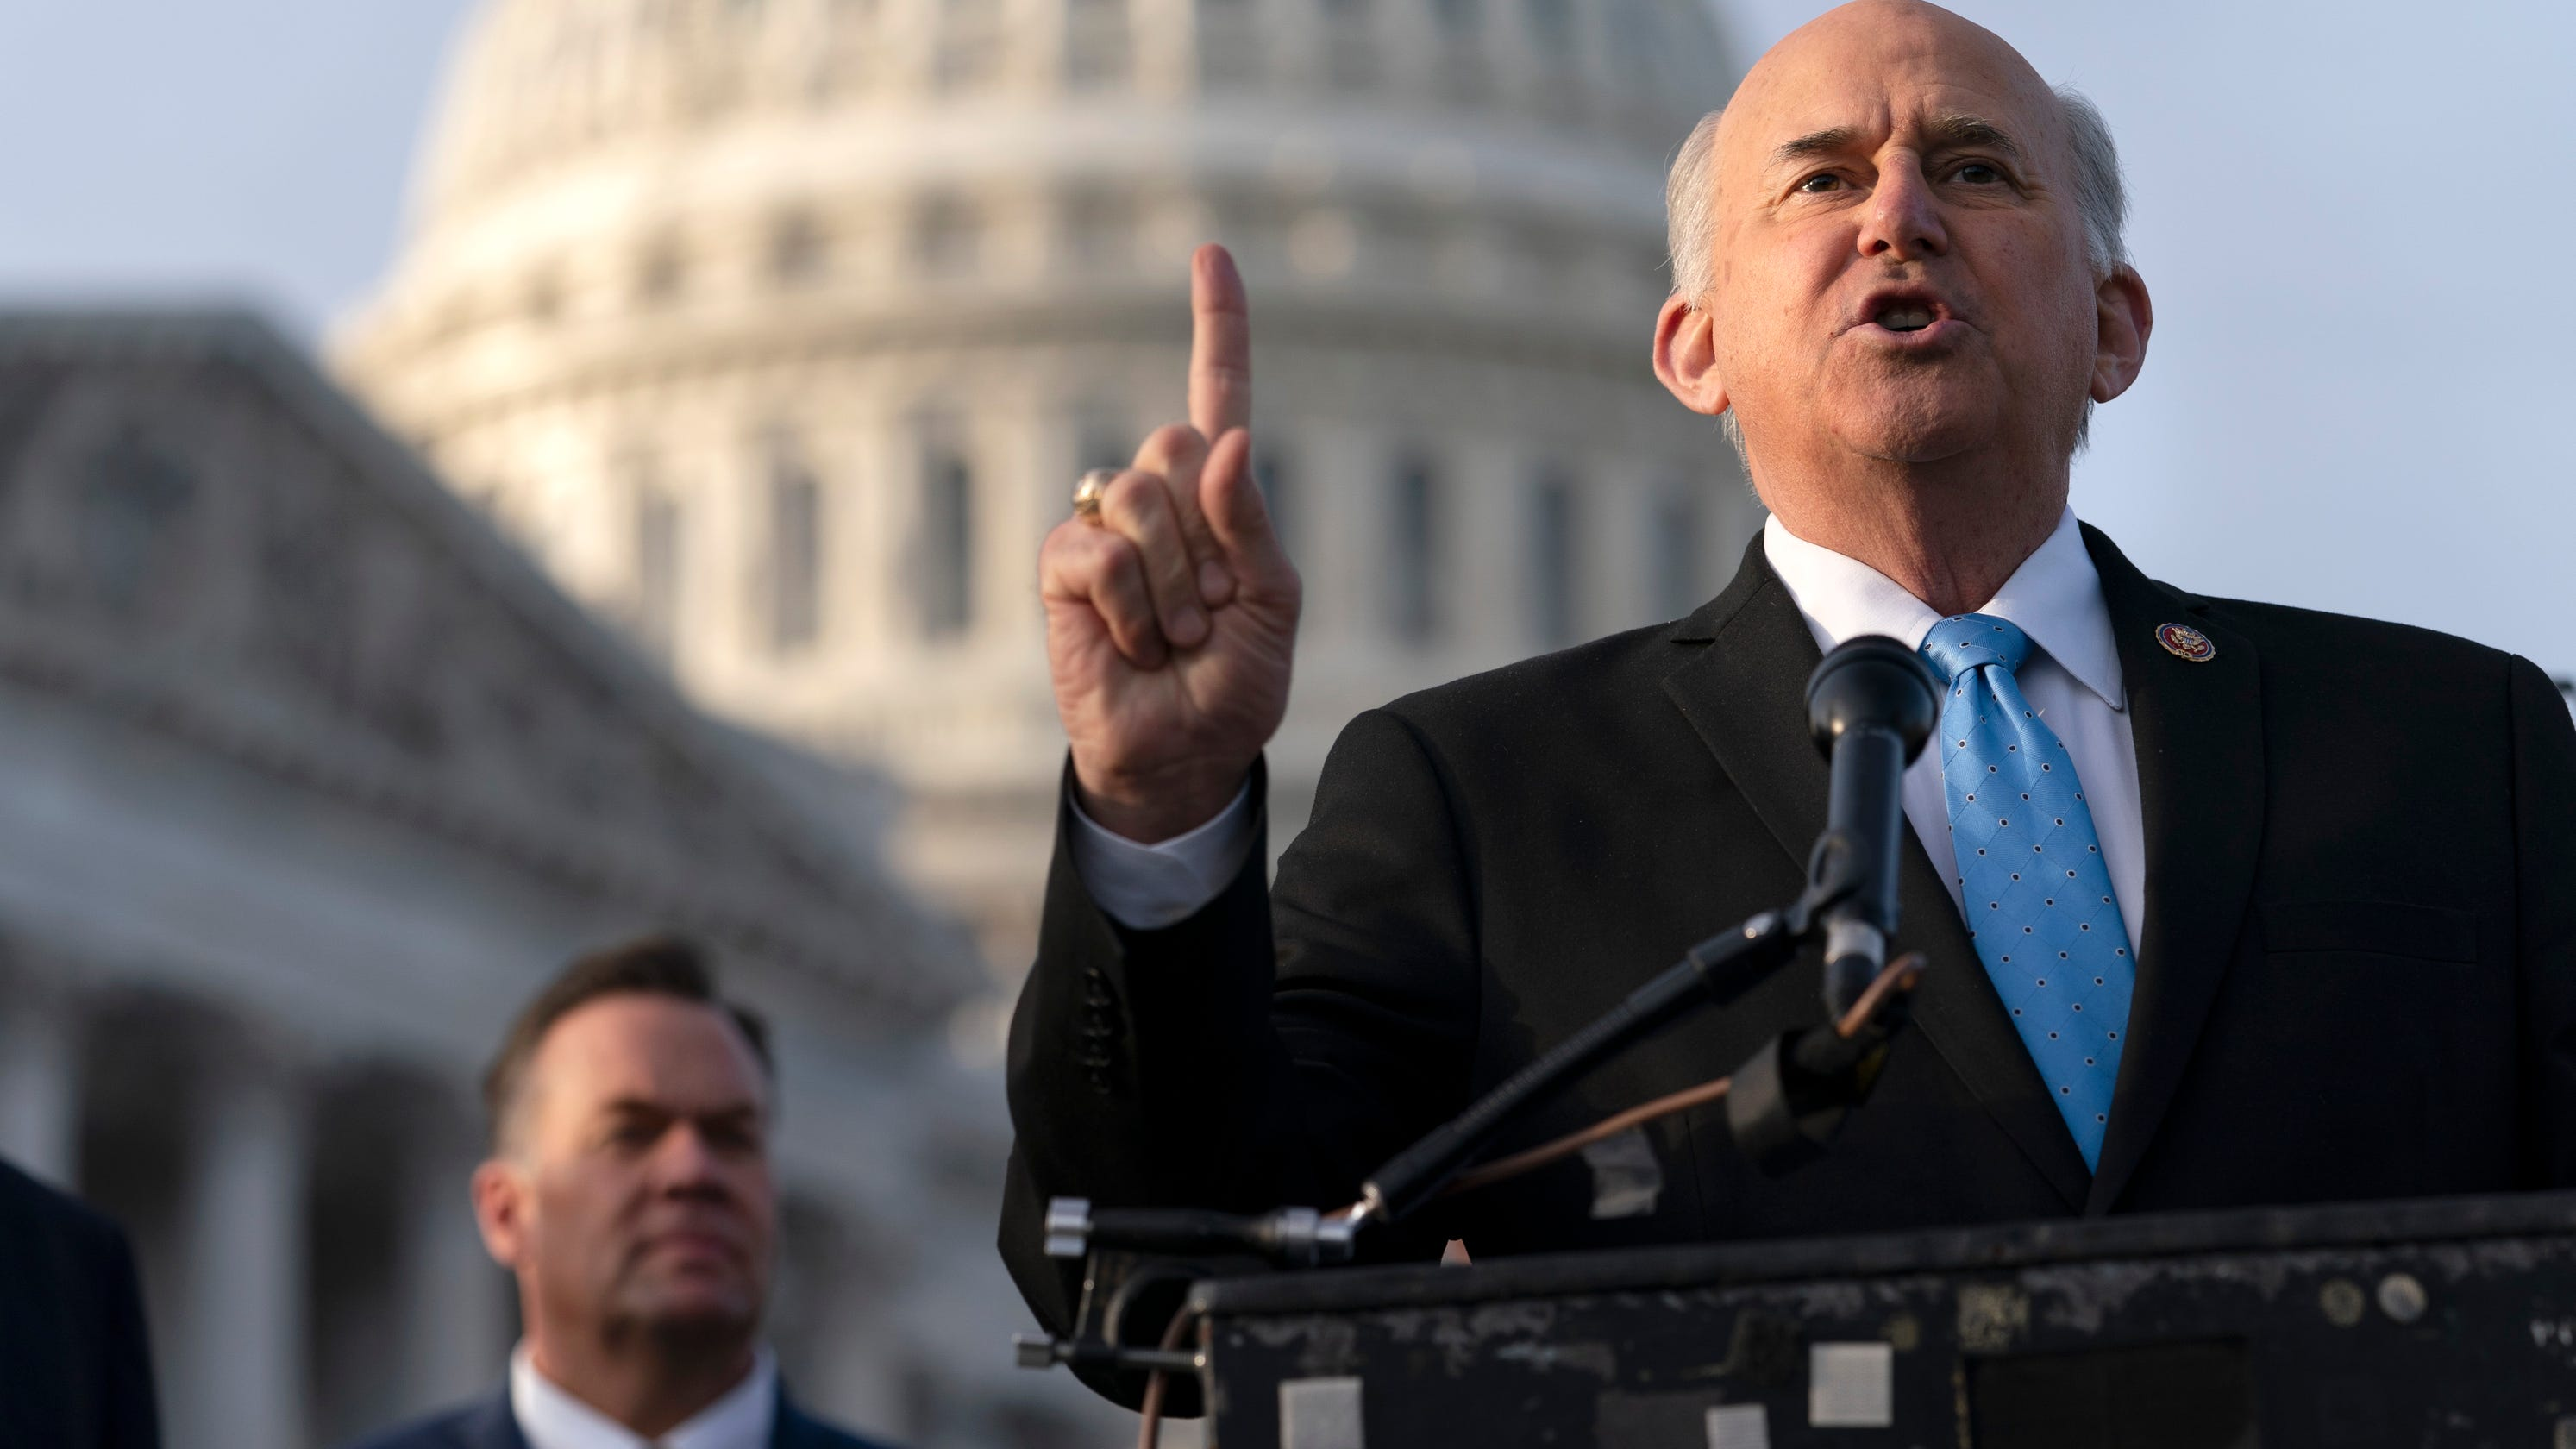 Paging Captain Marvel: Texas Rep. Louie Gohmert asks Forest Service to alter Earth's orbit, or the moon's, to fight climate change